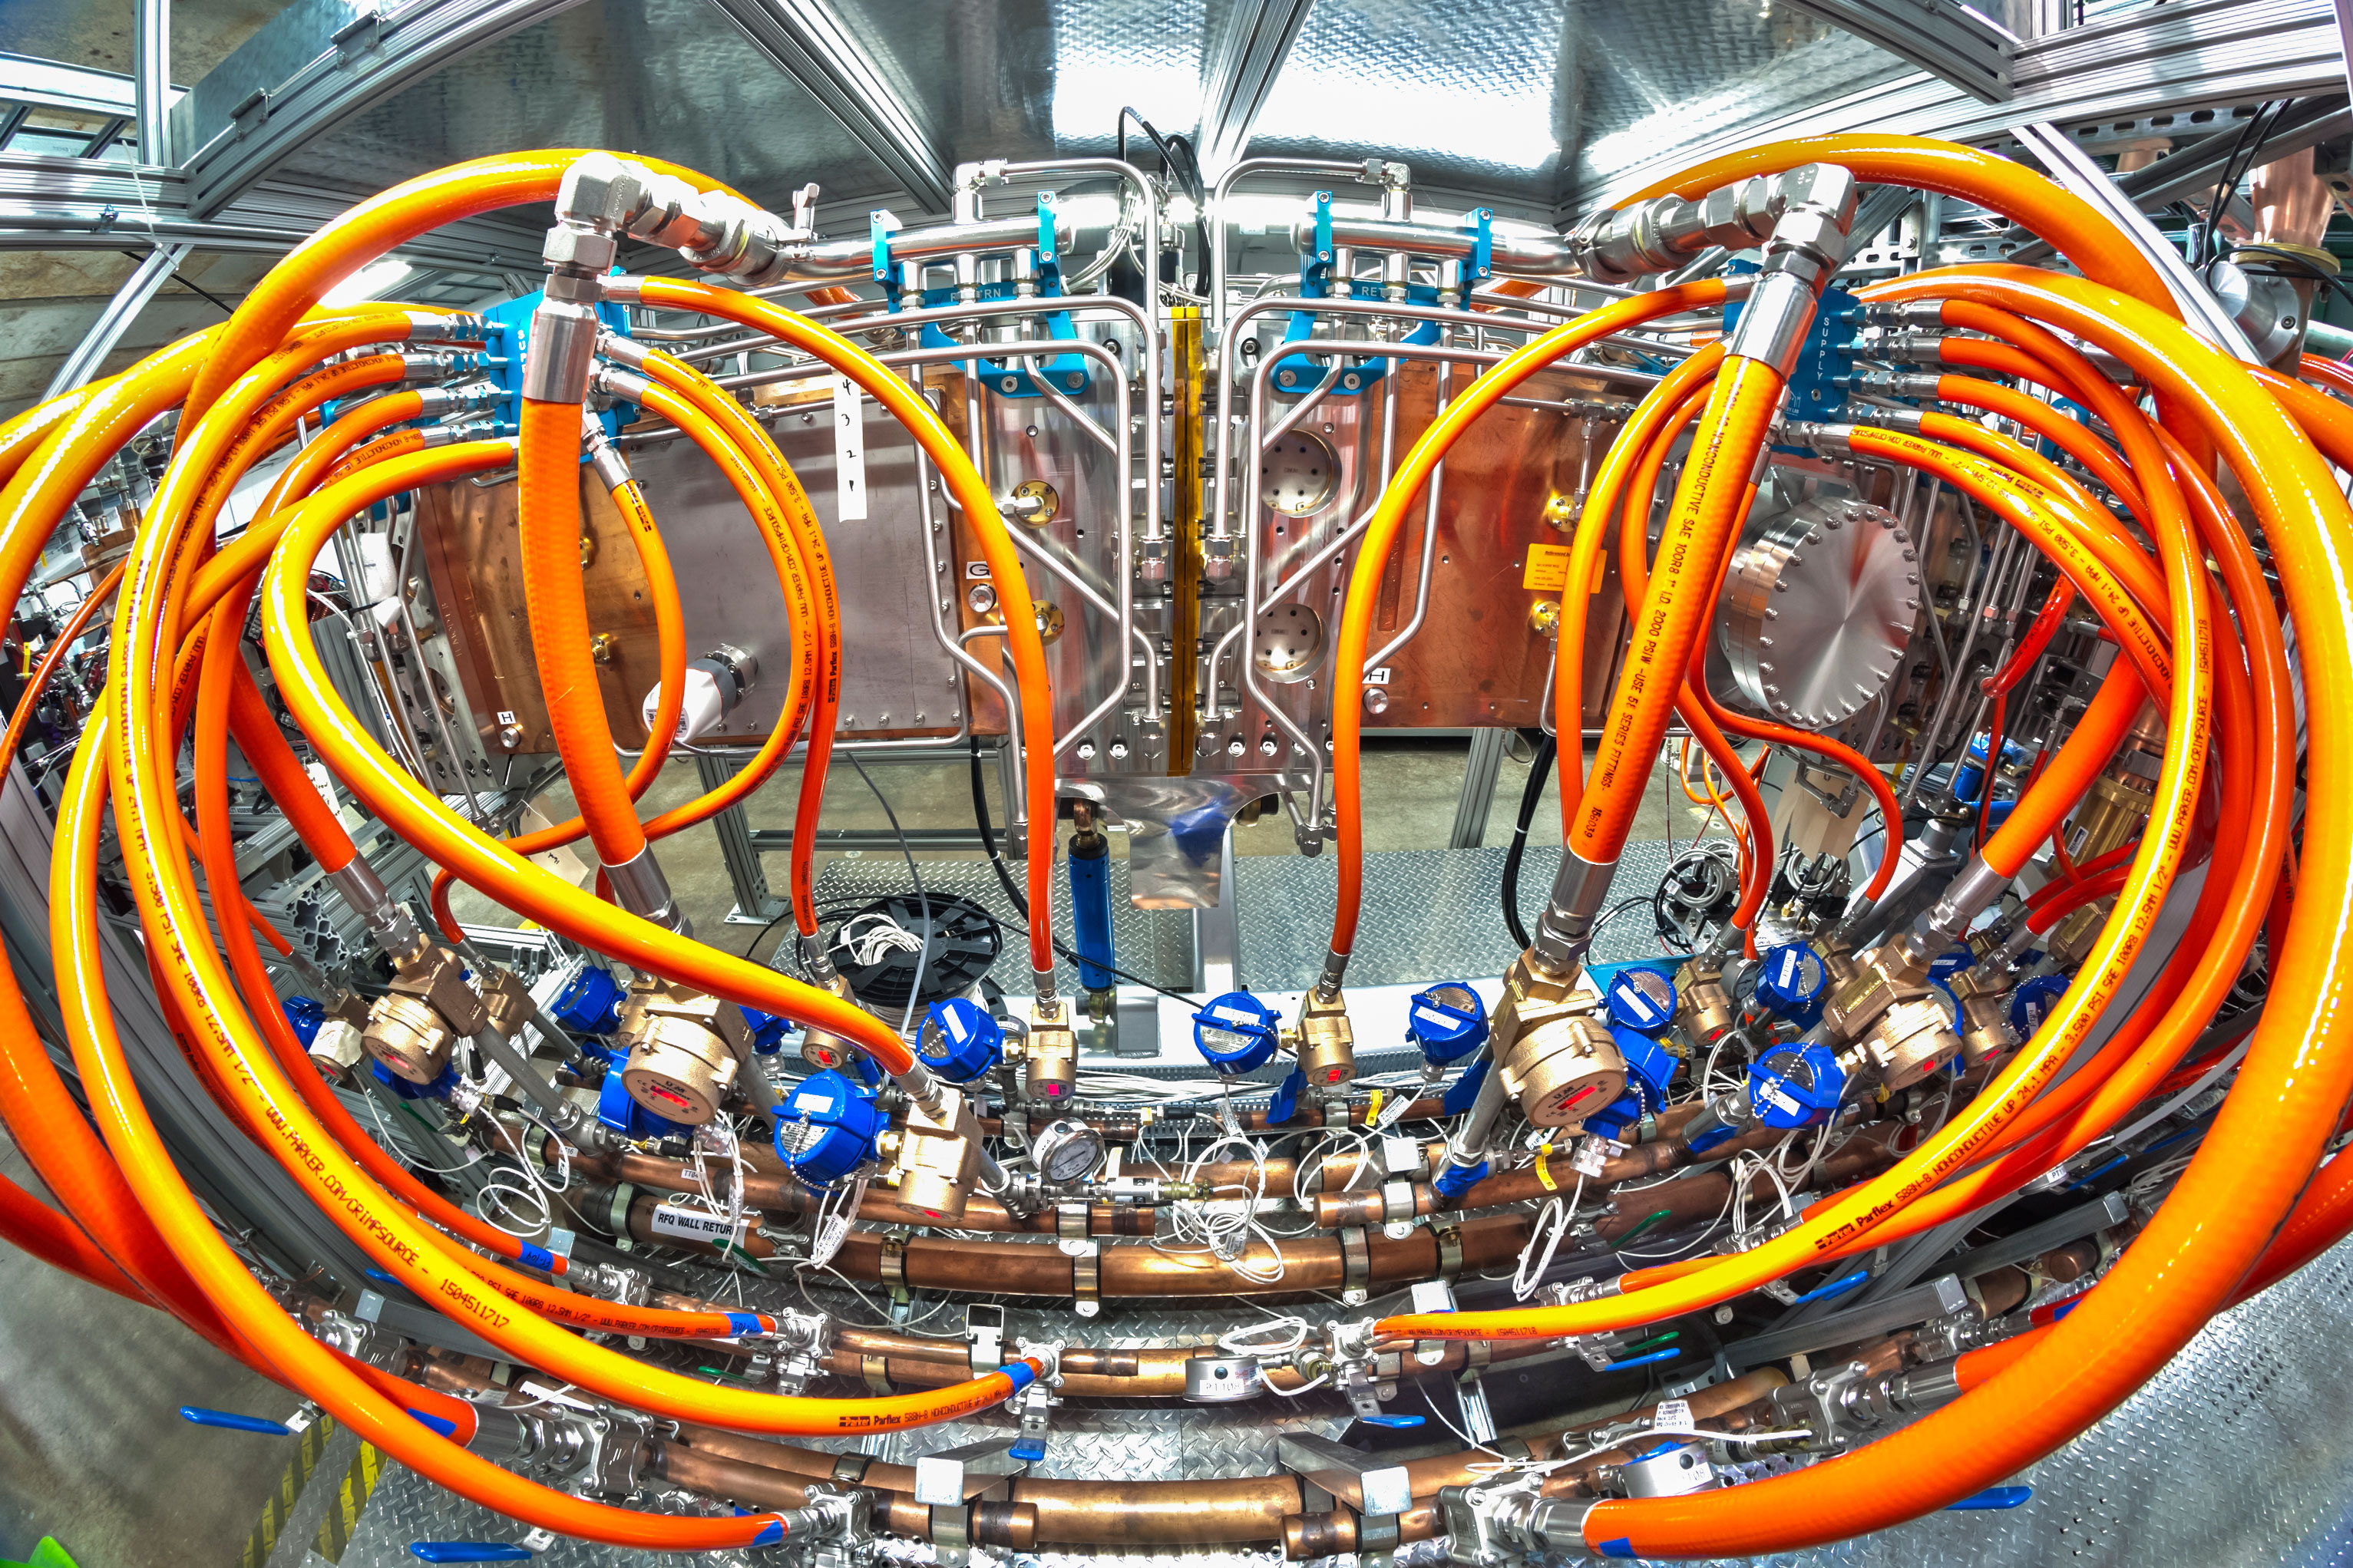 This is the radio-frequency quadrupole accelerator for PXIE, a test accelerator that prototypes the front end of the proposed PIP-II upgrades to the Fermilab accelerator complex, and its water cooling manifolds and hoses.  PXIE is located at the Cryomodule Test Facility. The Accelerator Division is currently preparing PXIE for full-time operation. Photo: Marty Murphy, AD